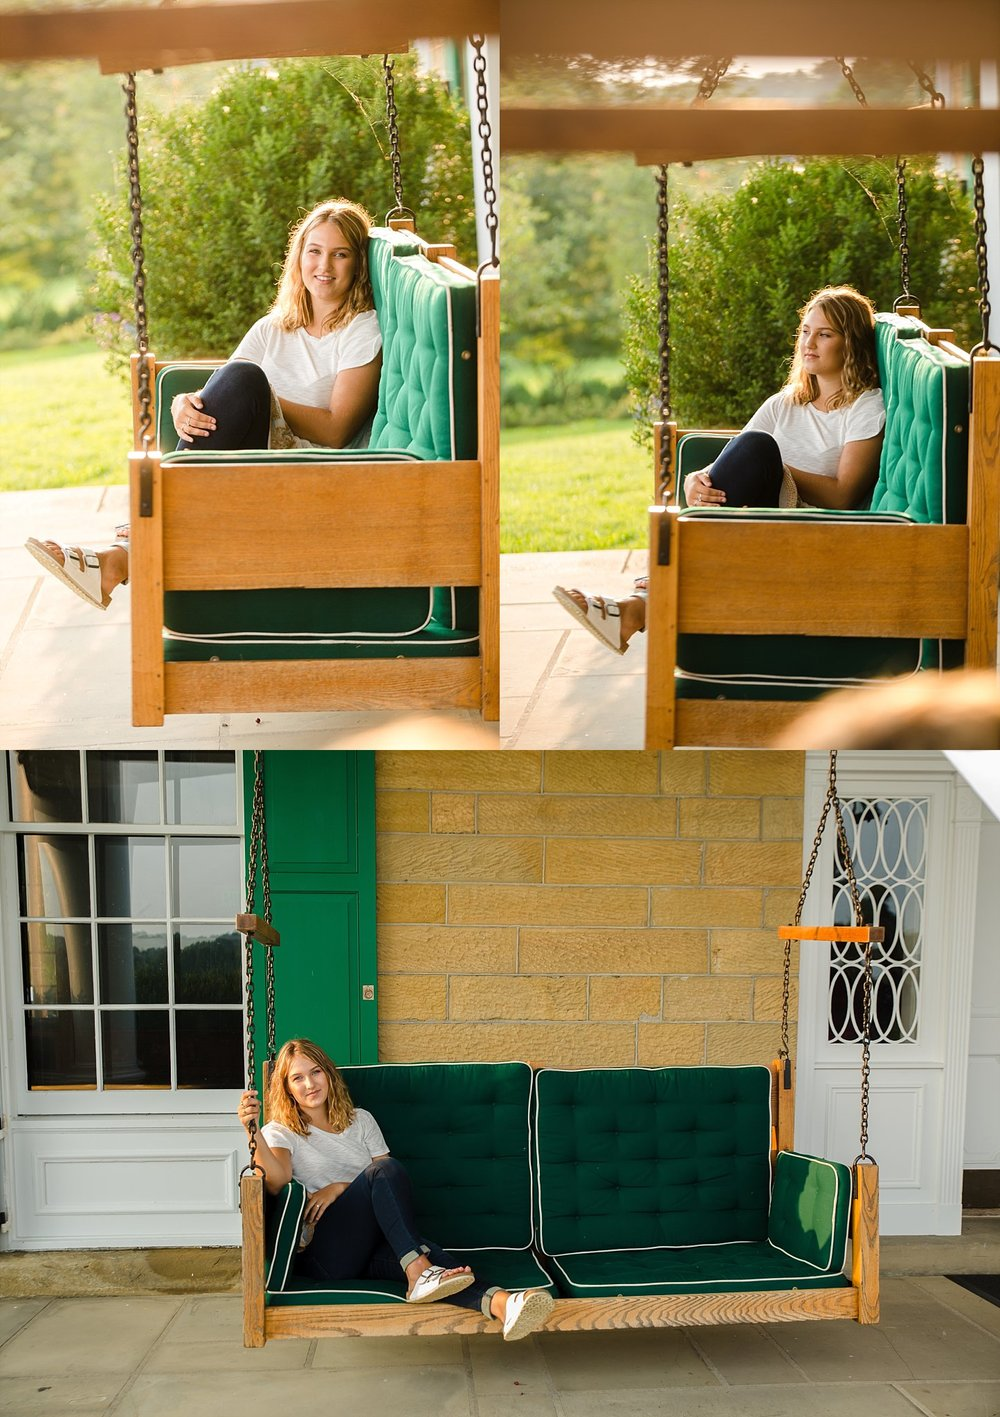 photos of high school senior girl in granville ohio